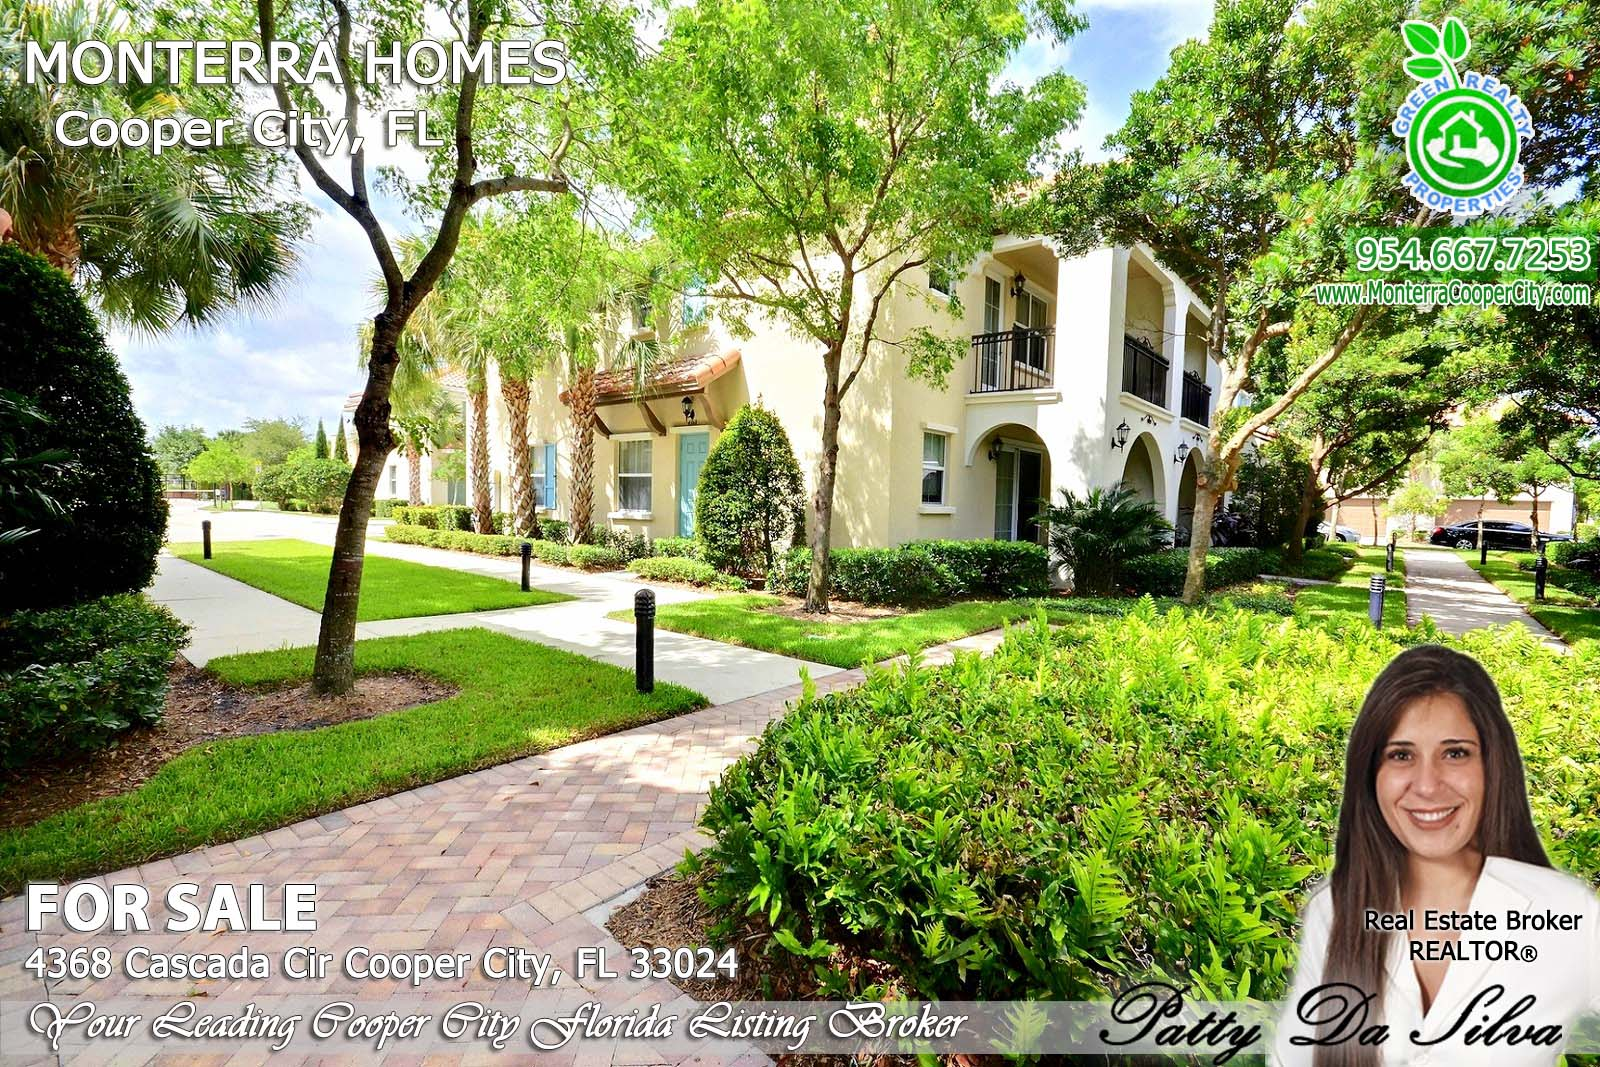 4368 Cascada Cir, Cooper City FL (2)